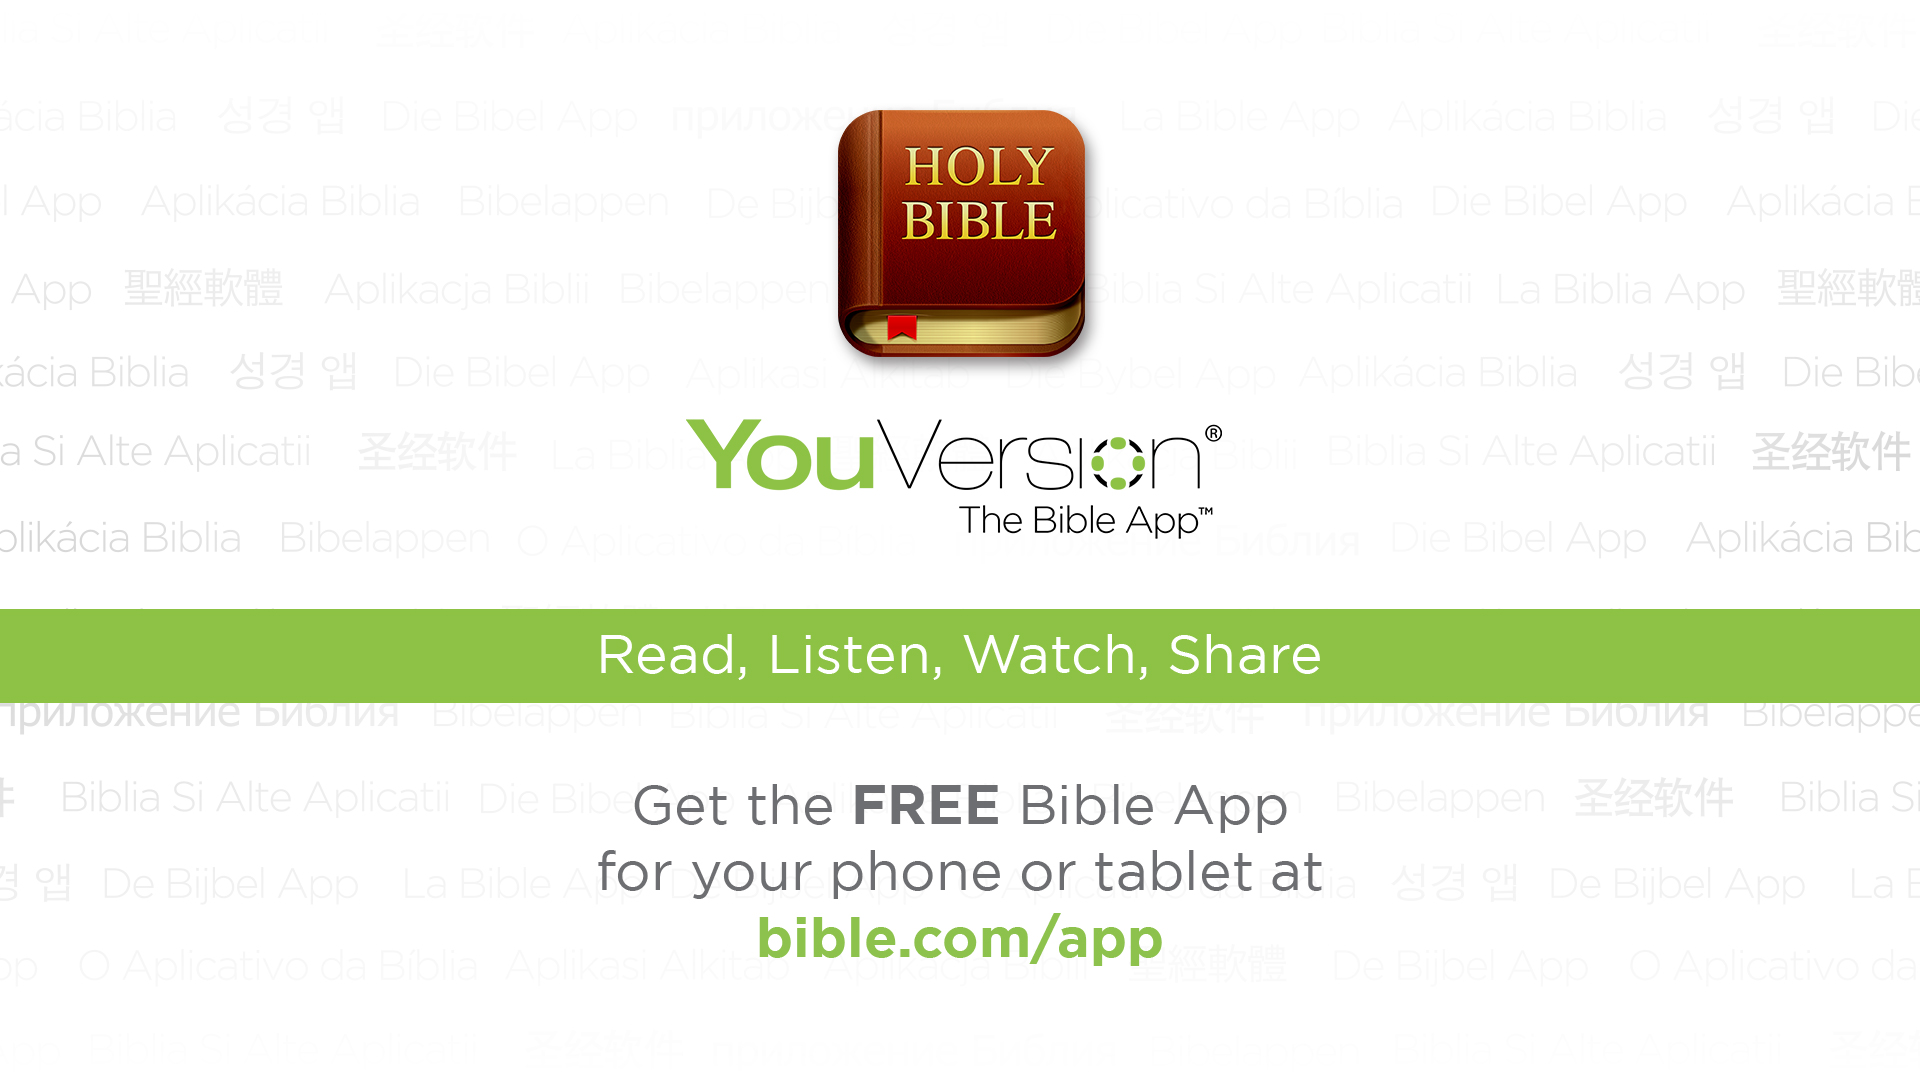 YouVersion_ProPresenter_White_1920x1080.jpg